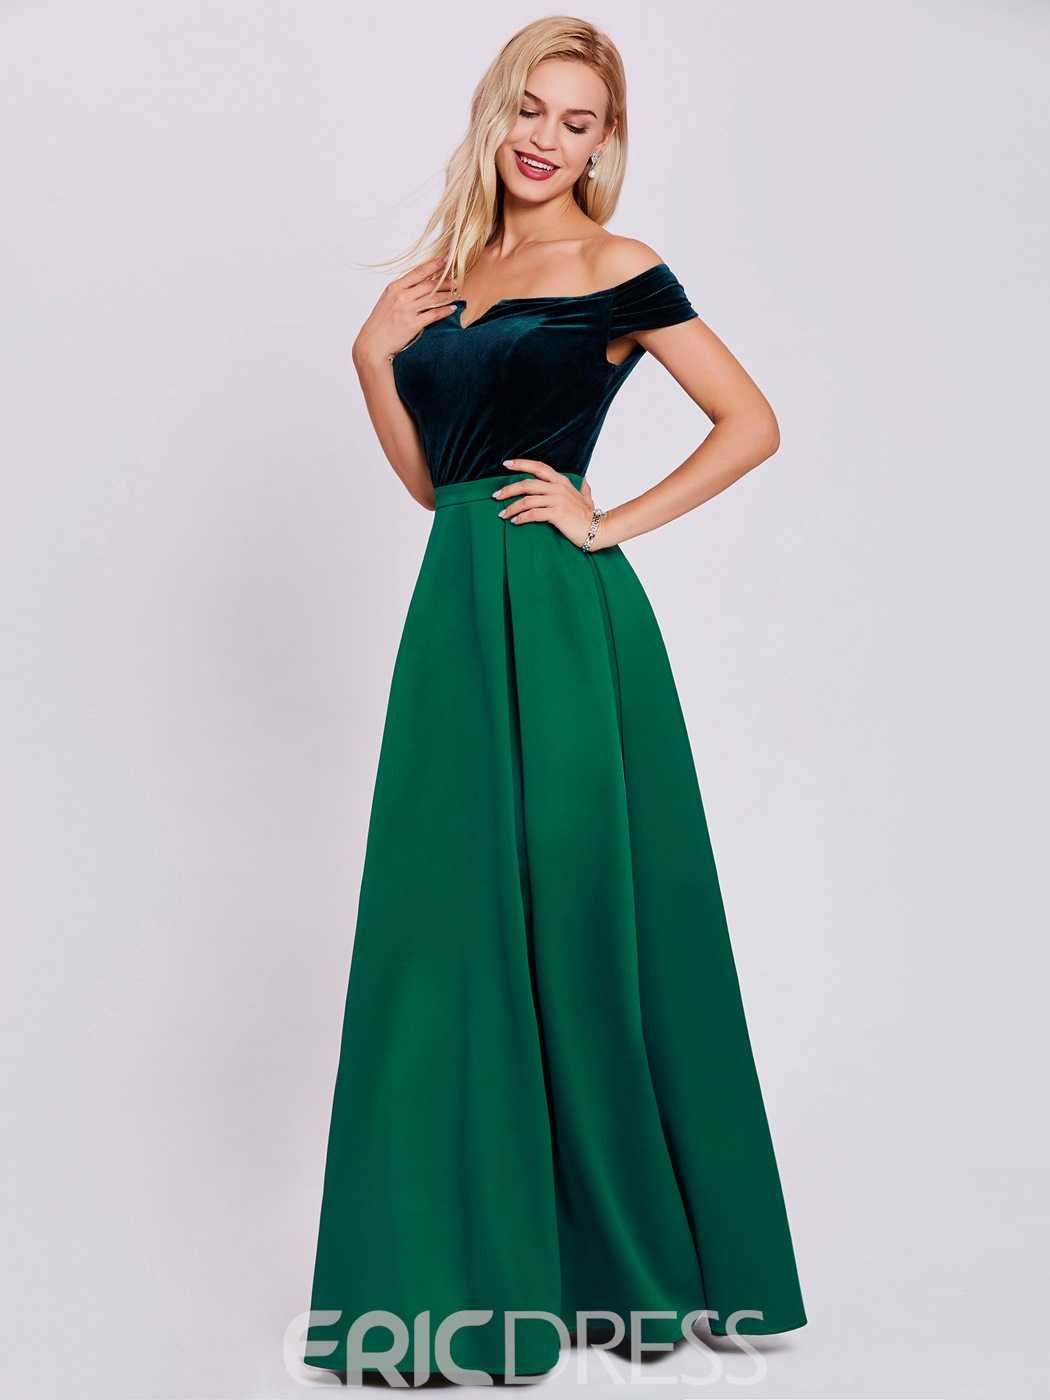 ericdress eine line-off-the-shoulder lange Abendkleid